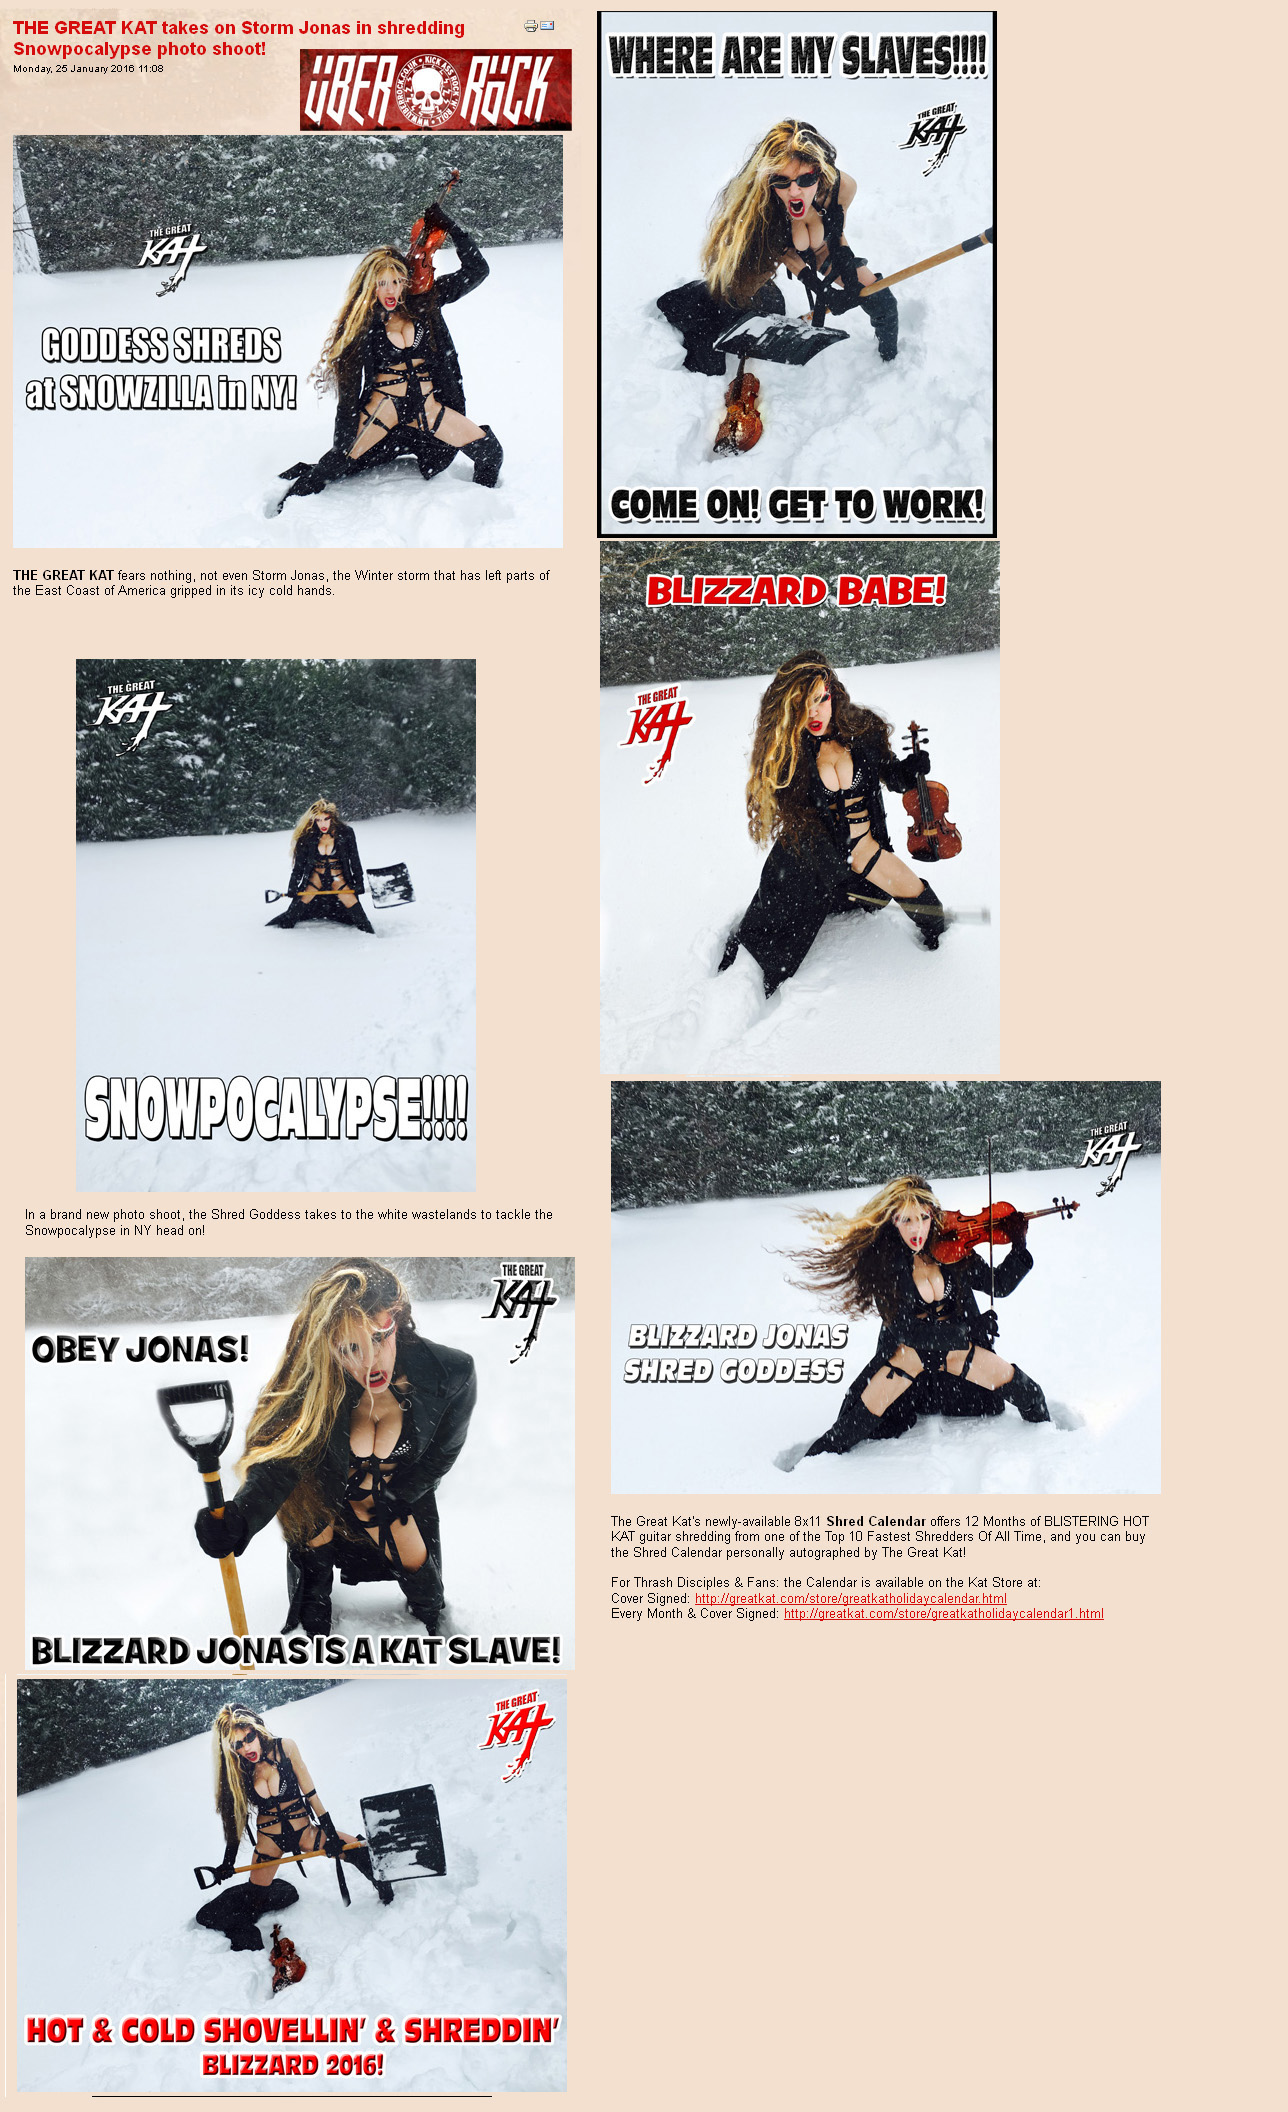 """UBER ROCK FEATURES THE GREAT KAT in """"THE GREAT KAT takes on Storm Jonas in shredding Snowpocalypse photo shoot!"""" """"THE GREAT KAT fears nothing, not even Storm Jonas, the Winter storm that has left parts of the East Coast of America gripped in its icy cold hands. In a brand new photo shoot, the Shred Goddess takes to the white wastelands to tackle the Snowpocalypse in NY head on!"""" - Gaz, Uber Rock"""